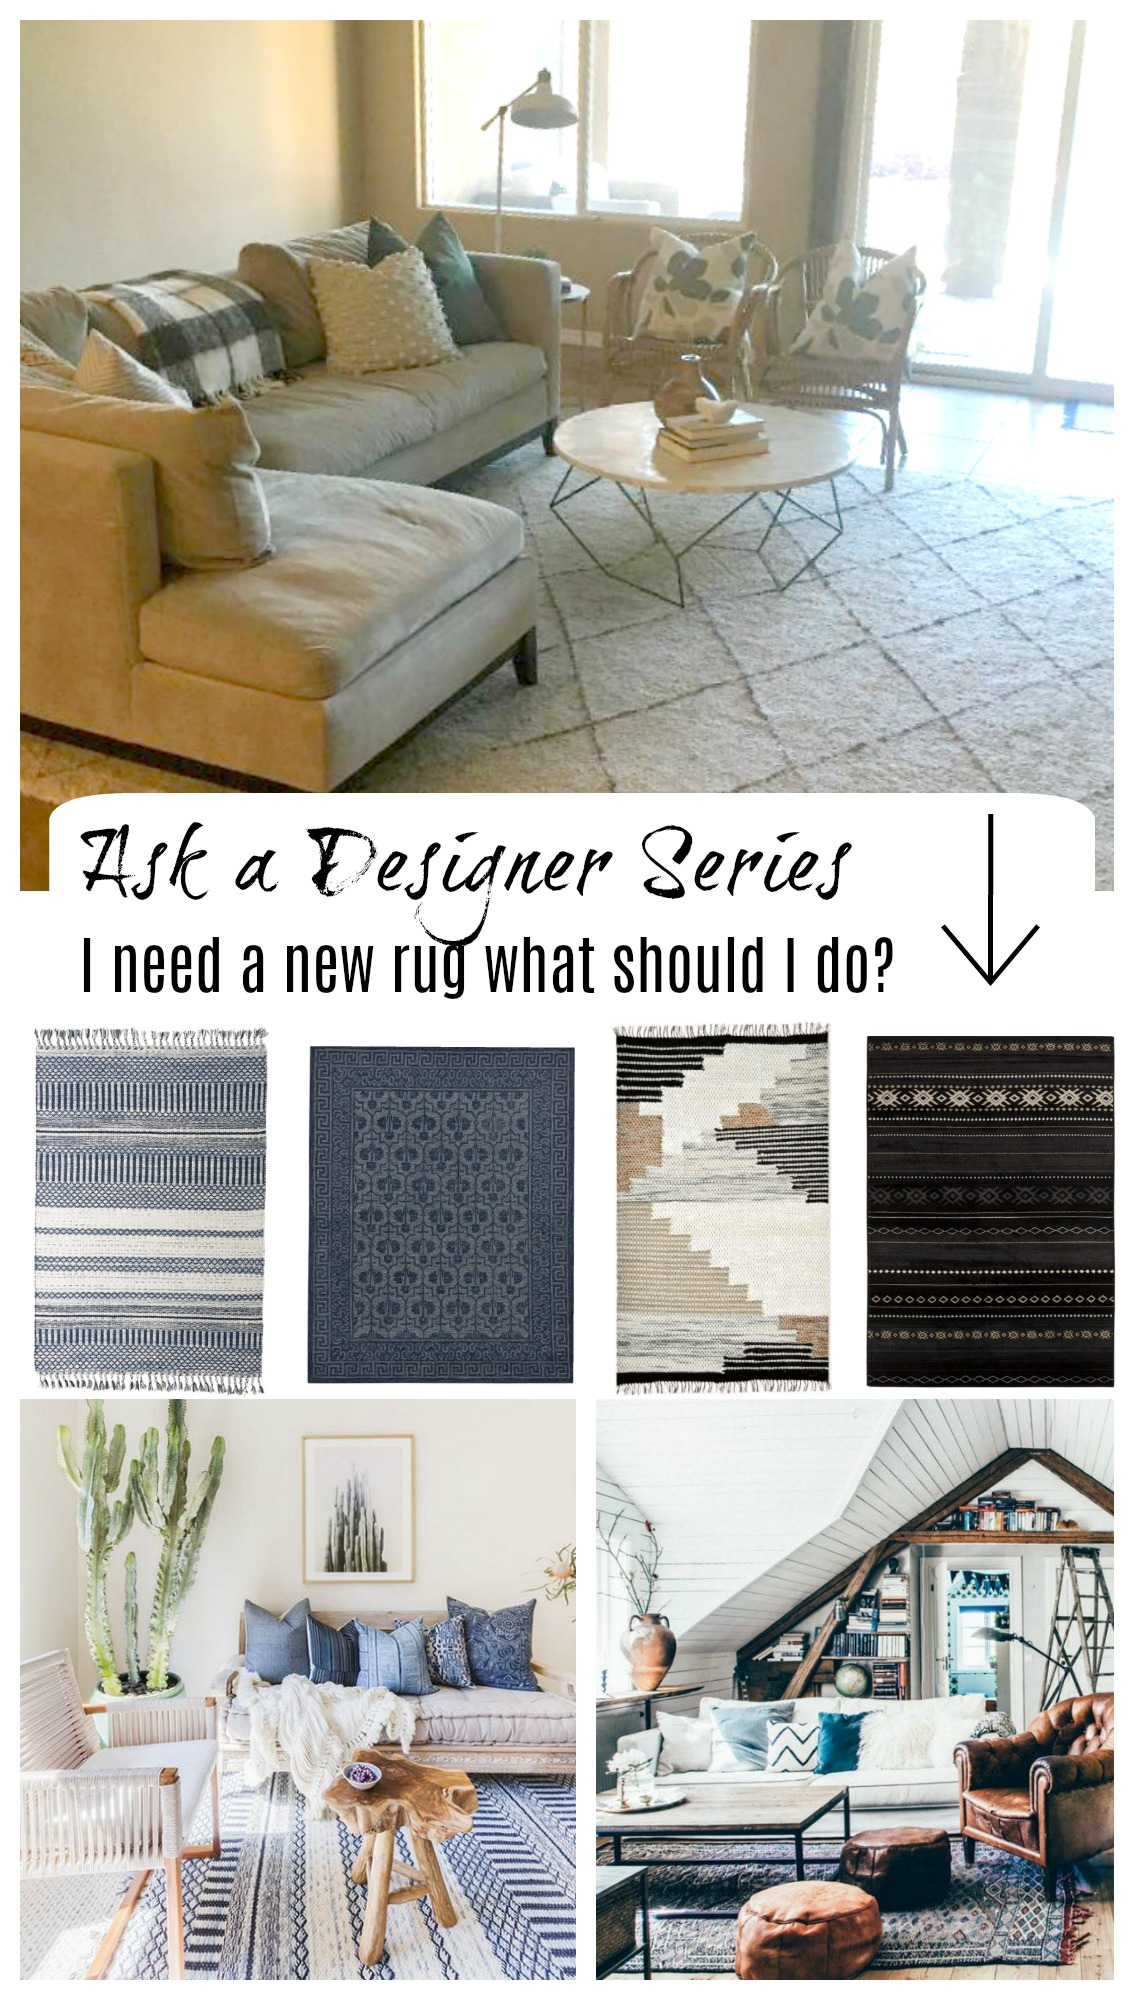 Ask a Designer- What Rug should I do in here?